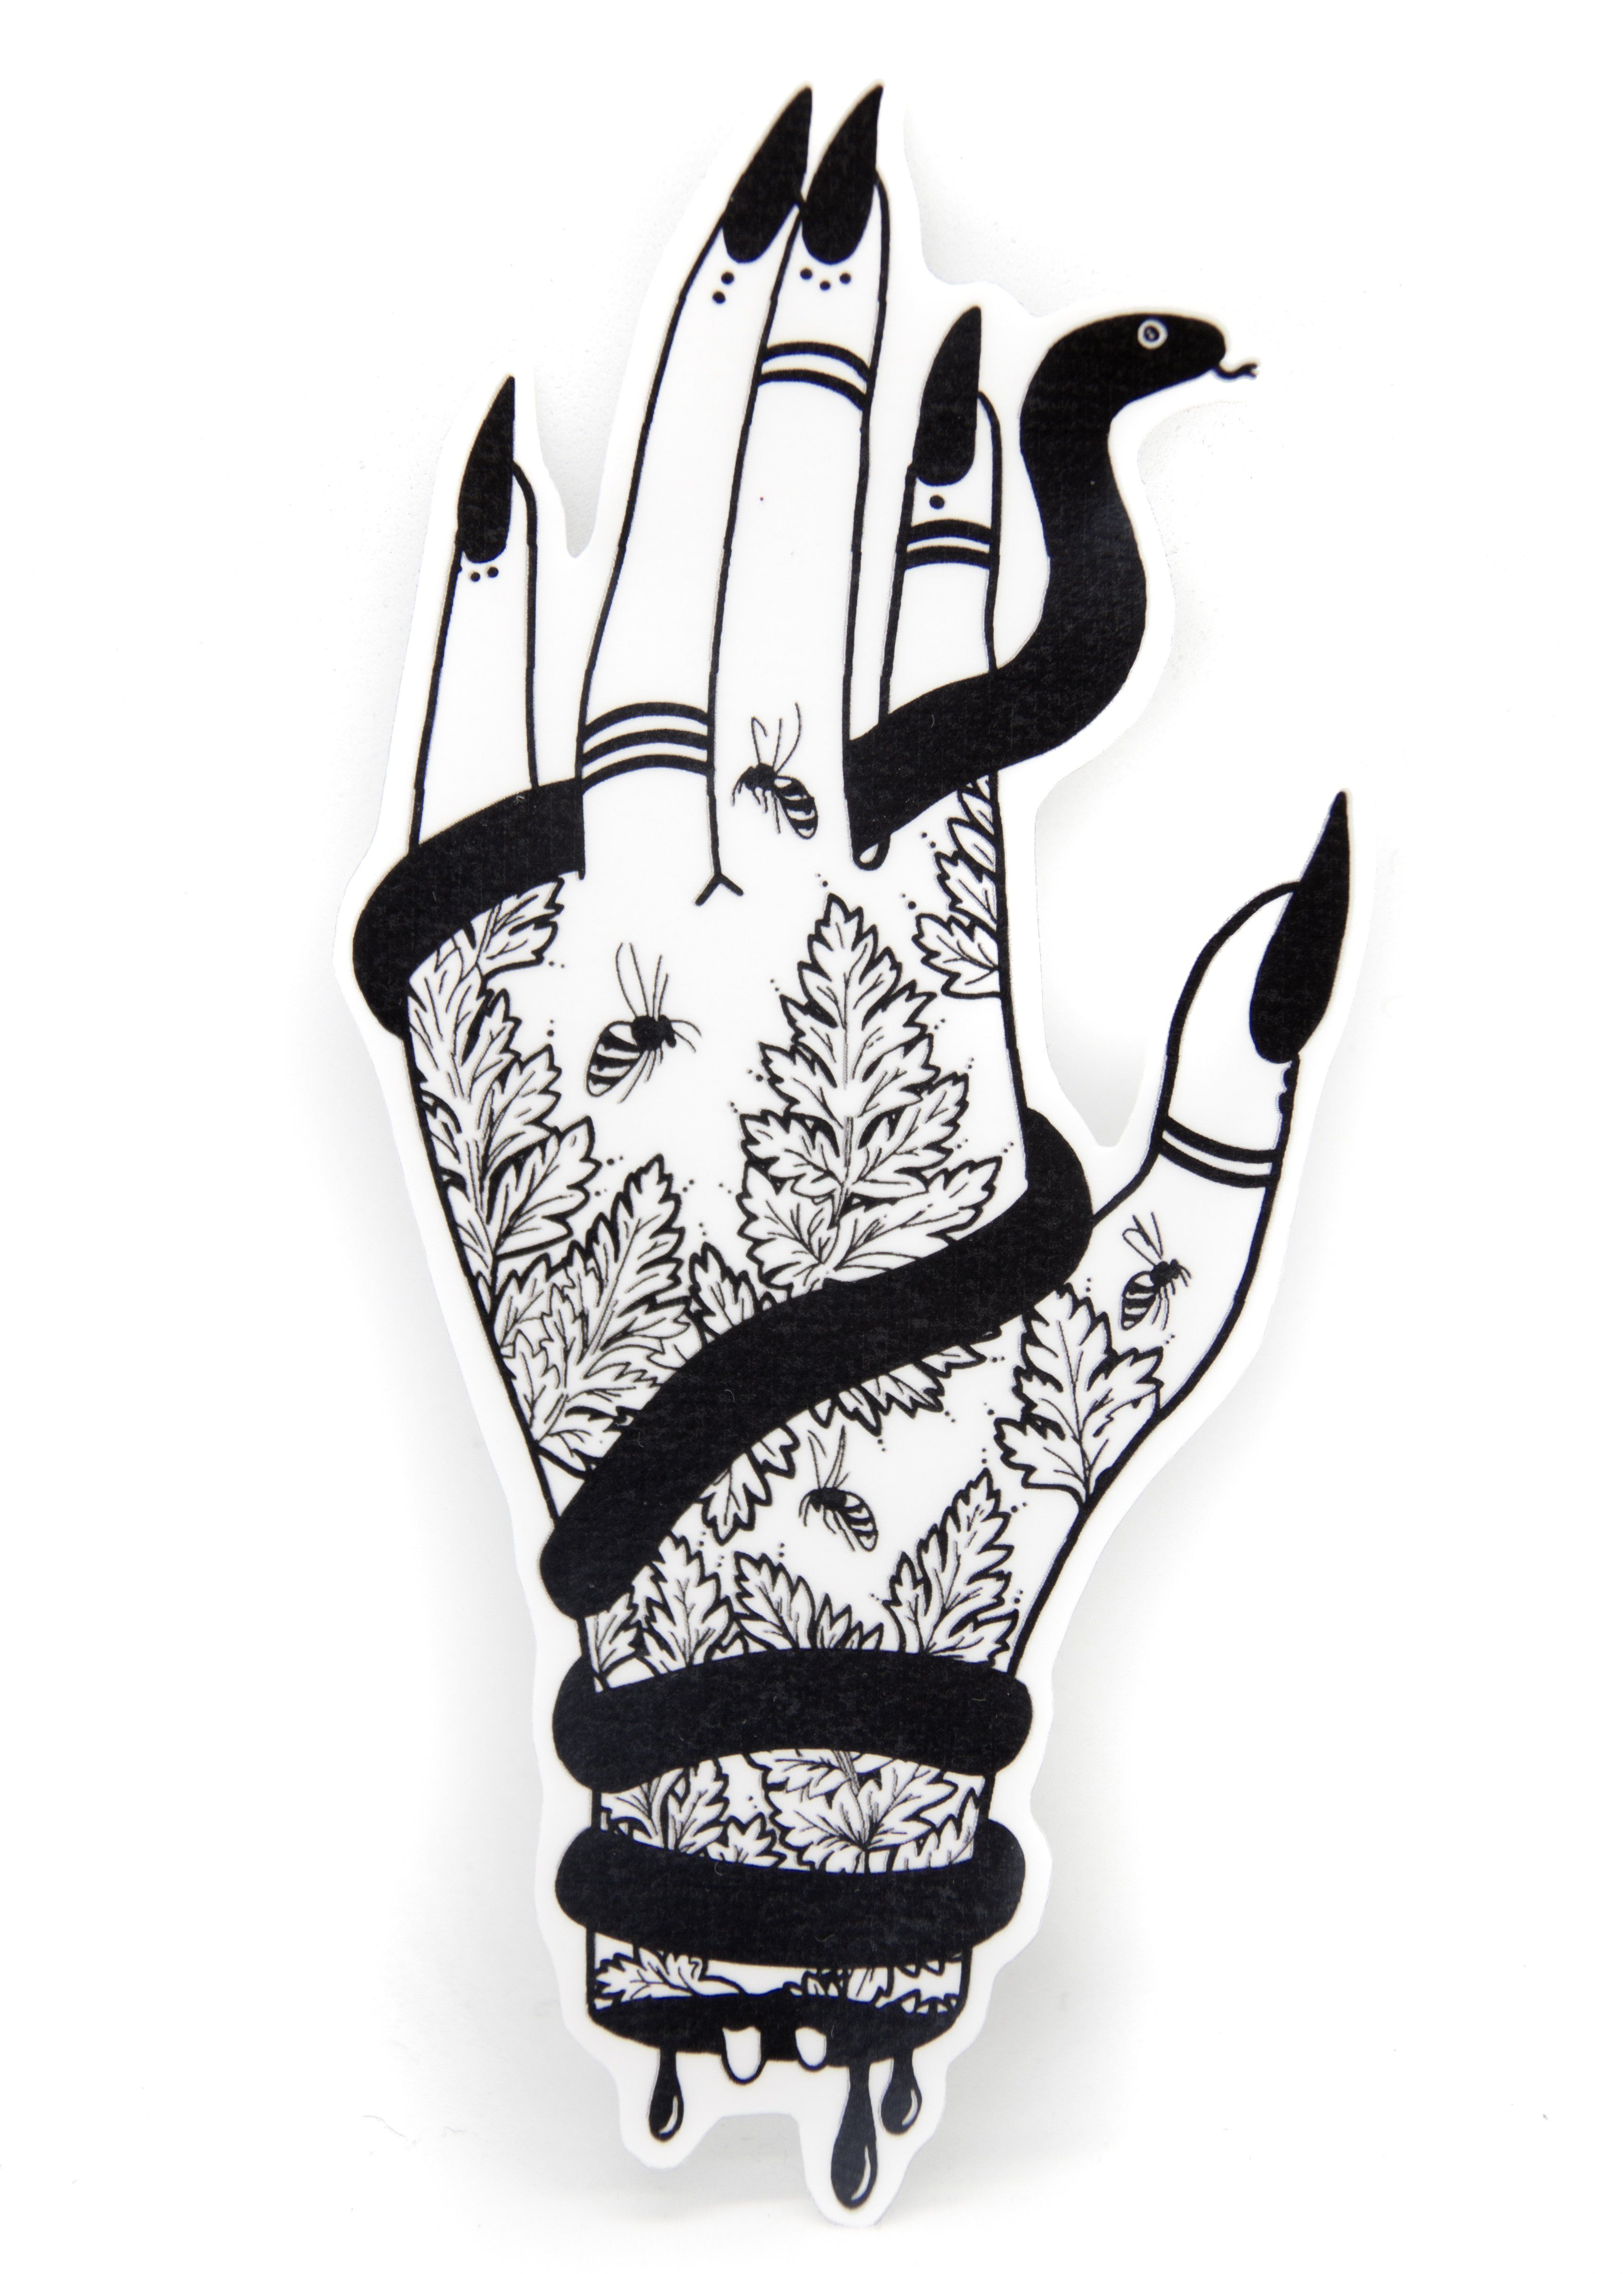 Her wicked left hand with snake and hemlock vinyl sticker